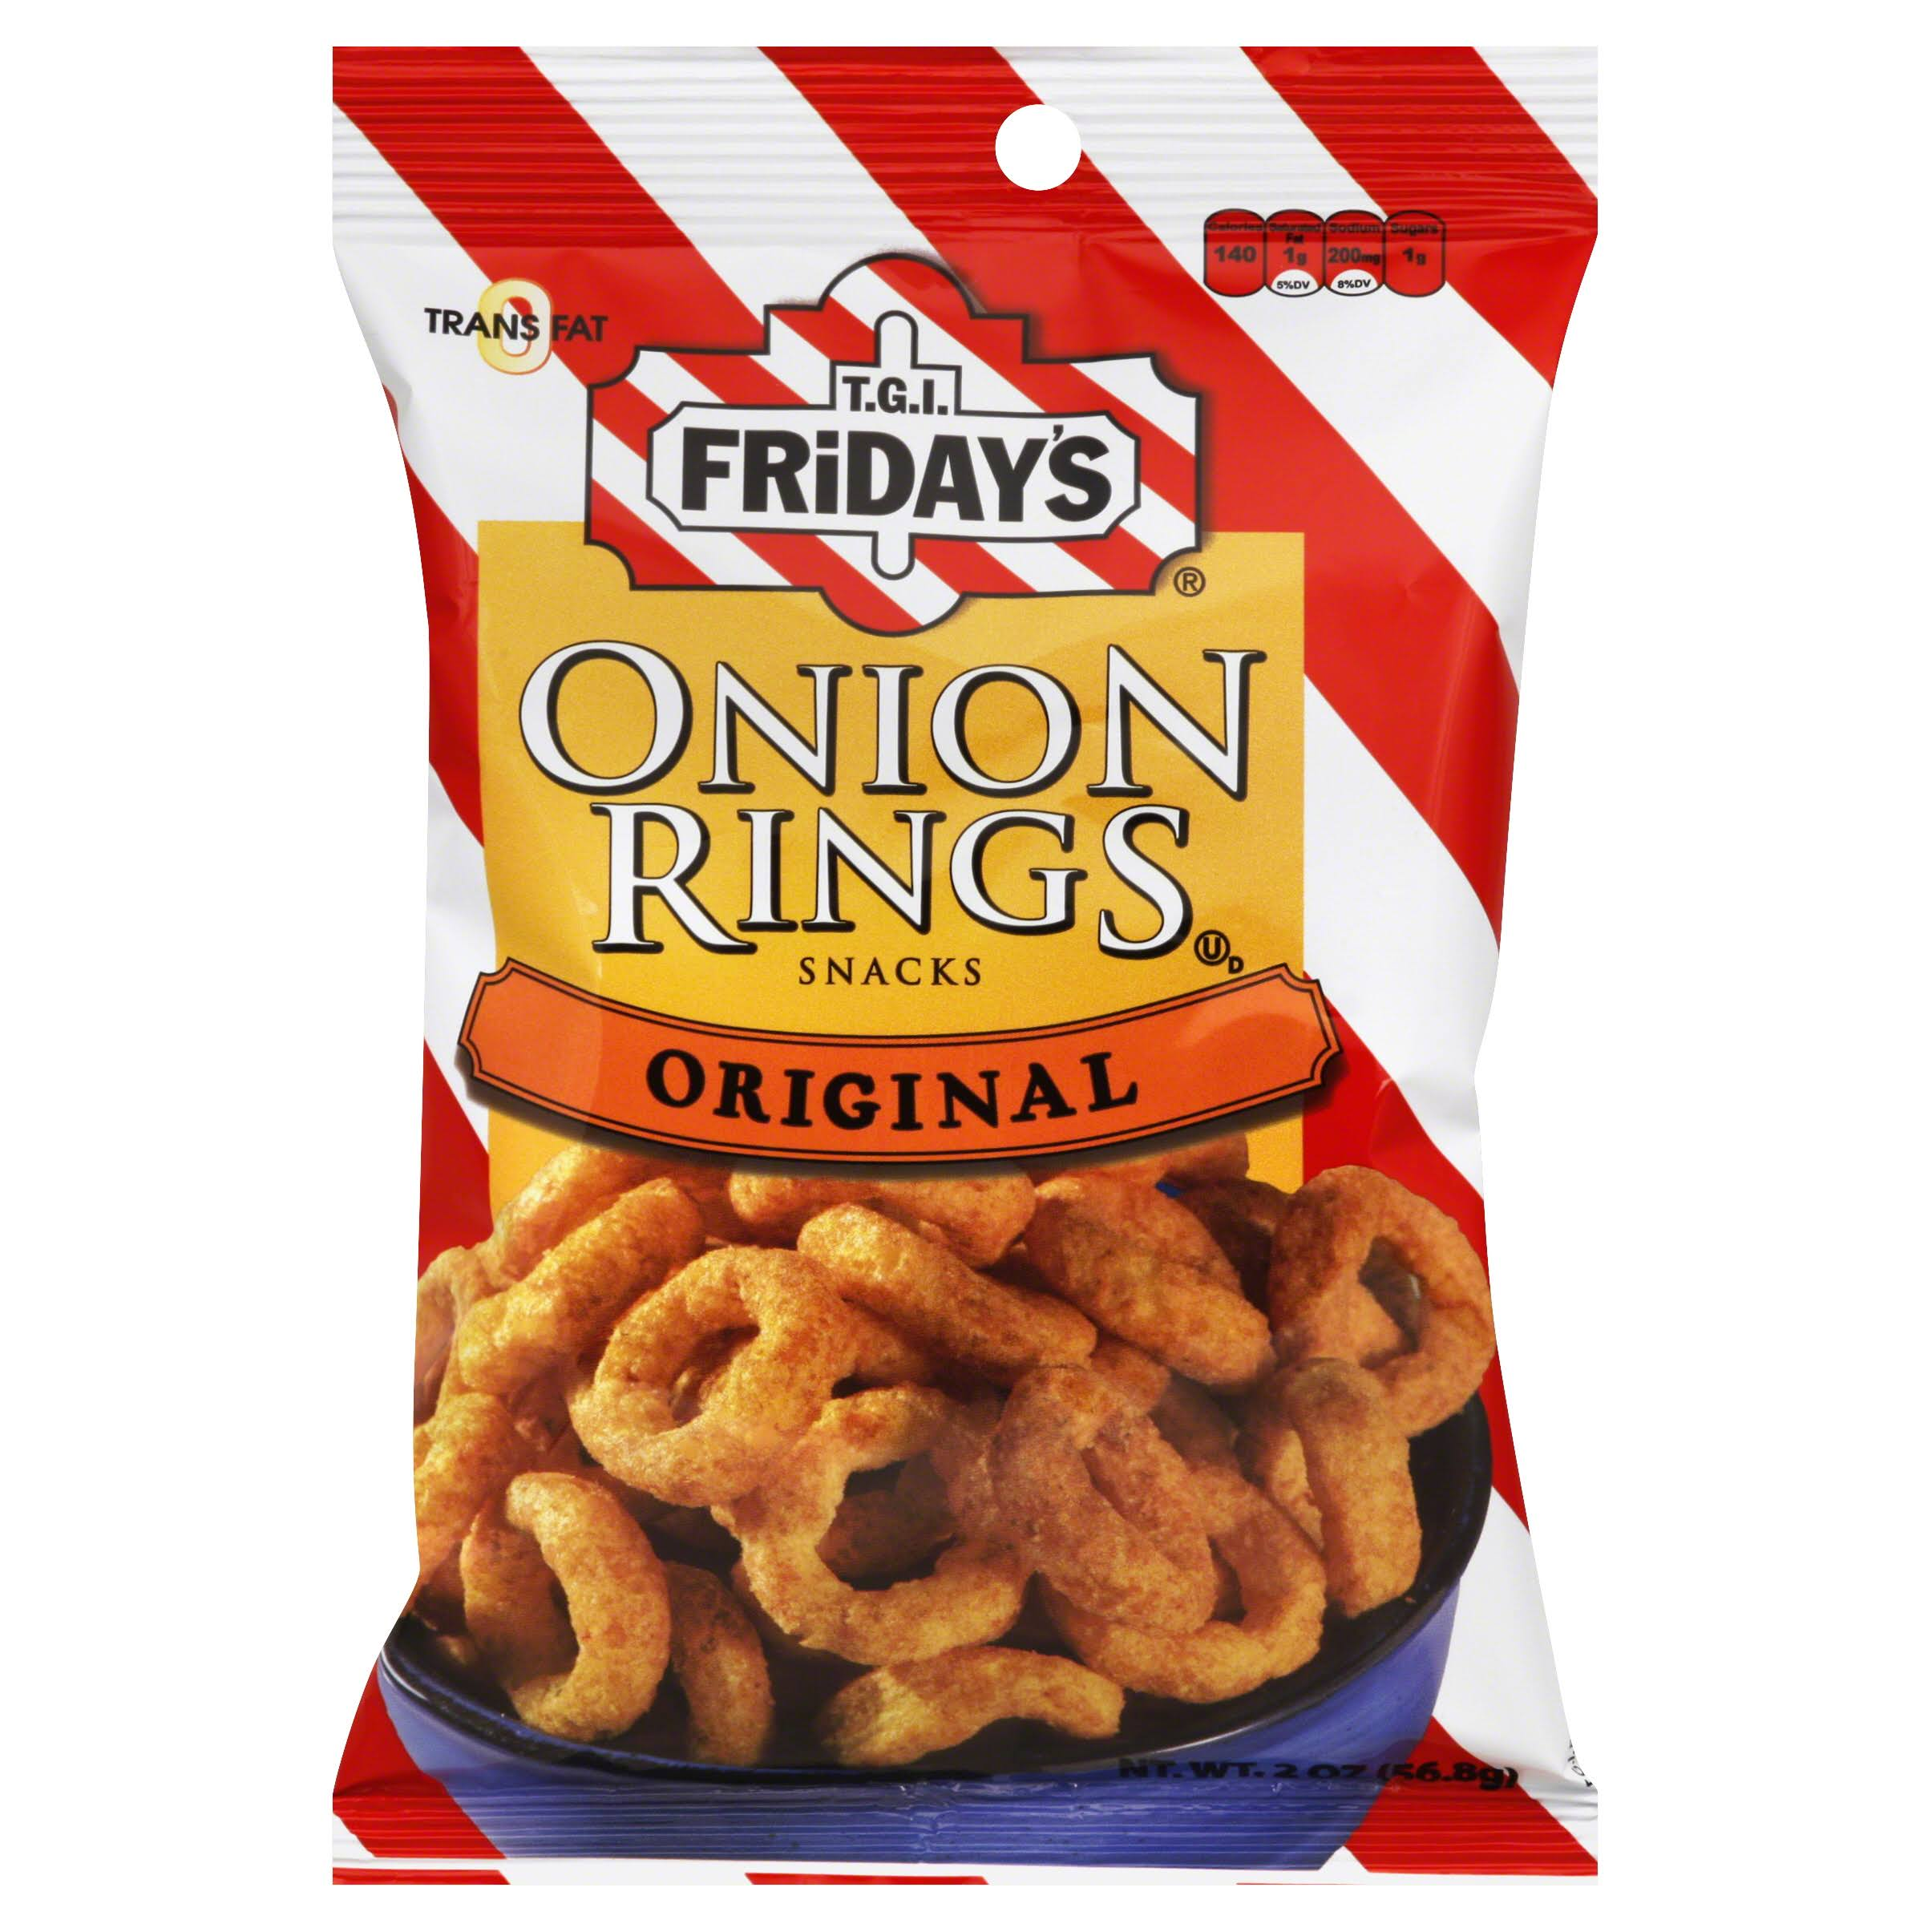 Tgi Fridays Onion Rings Snacks